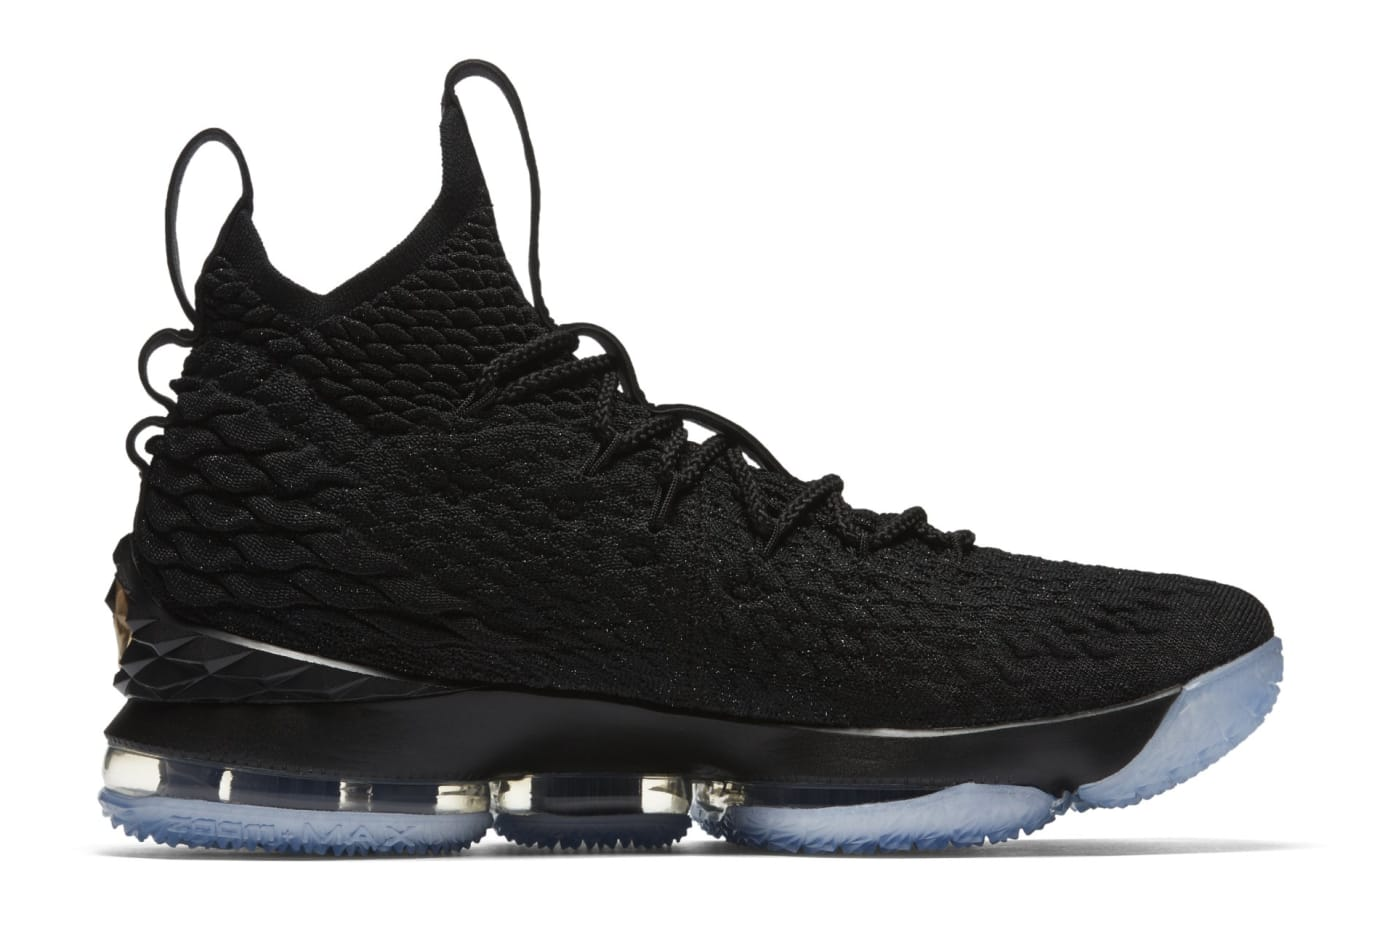 Nike LeBron 15 'Black/Gold' 897649-006 (Medial)